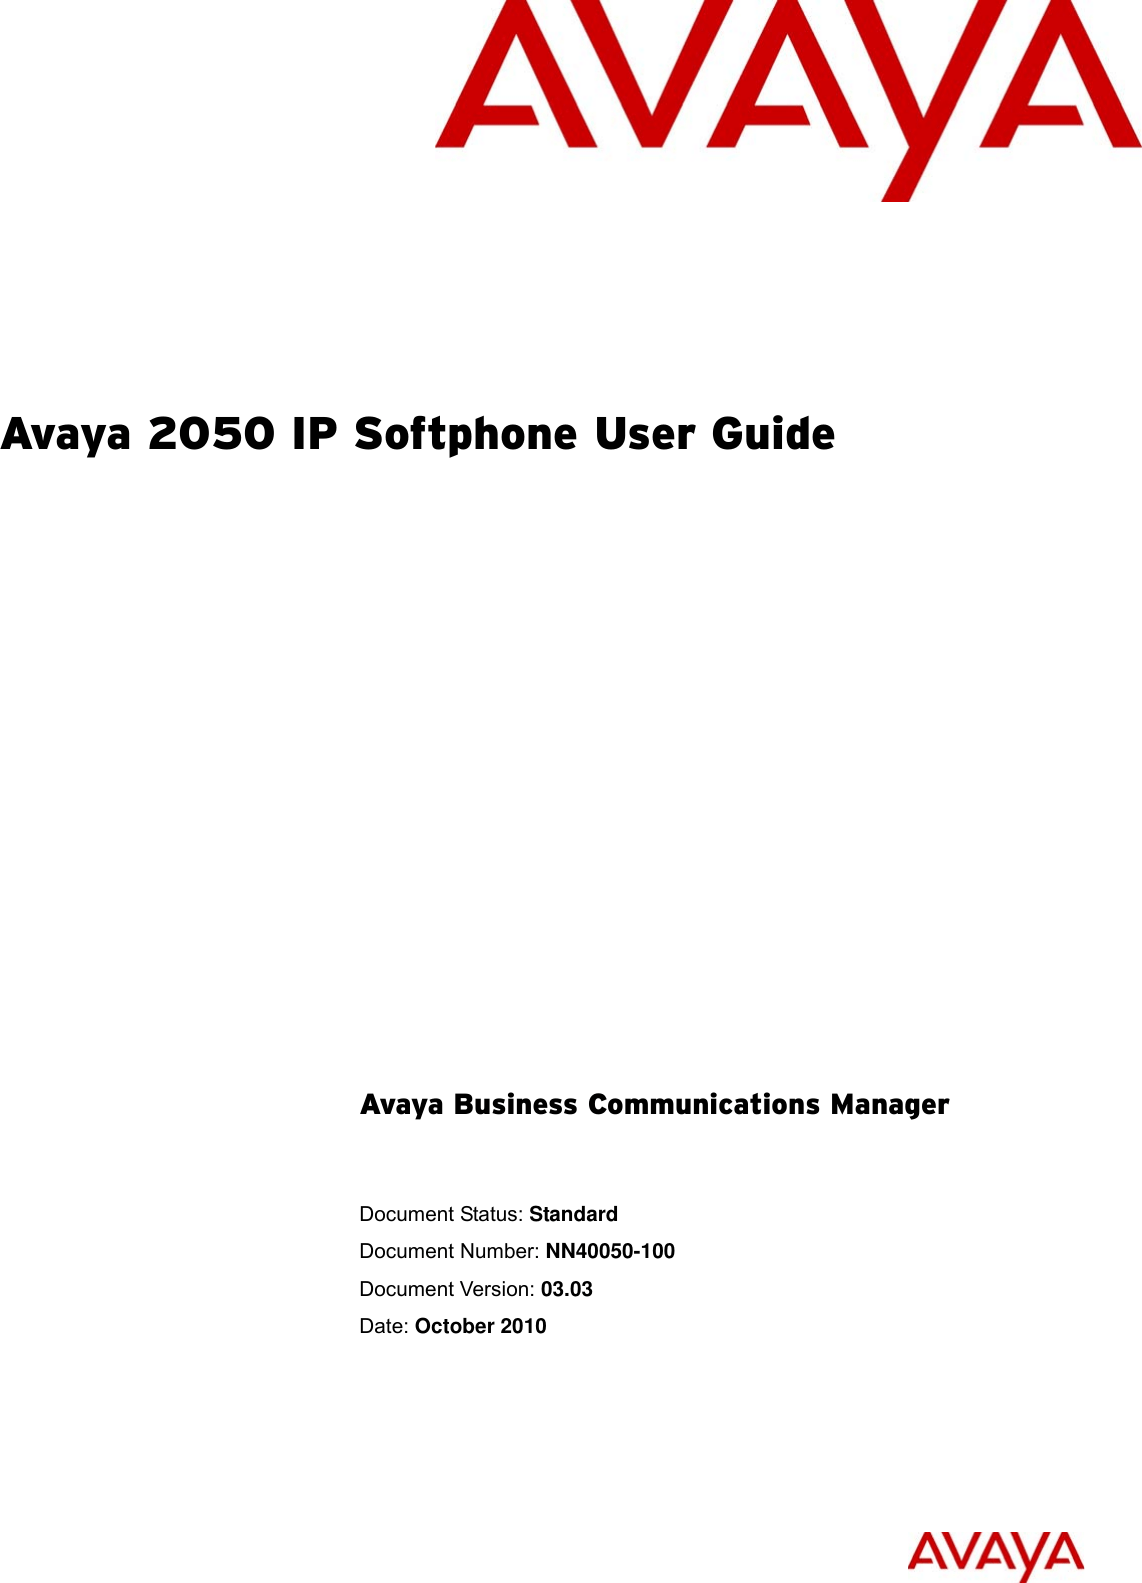 Avaya Business Communications Manager 2050 Ip Softphone